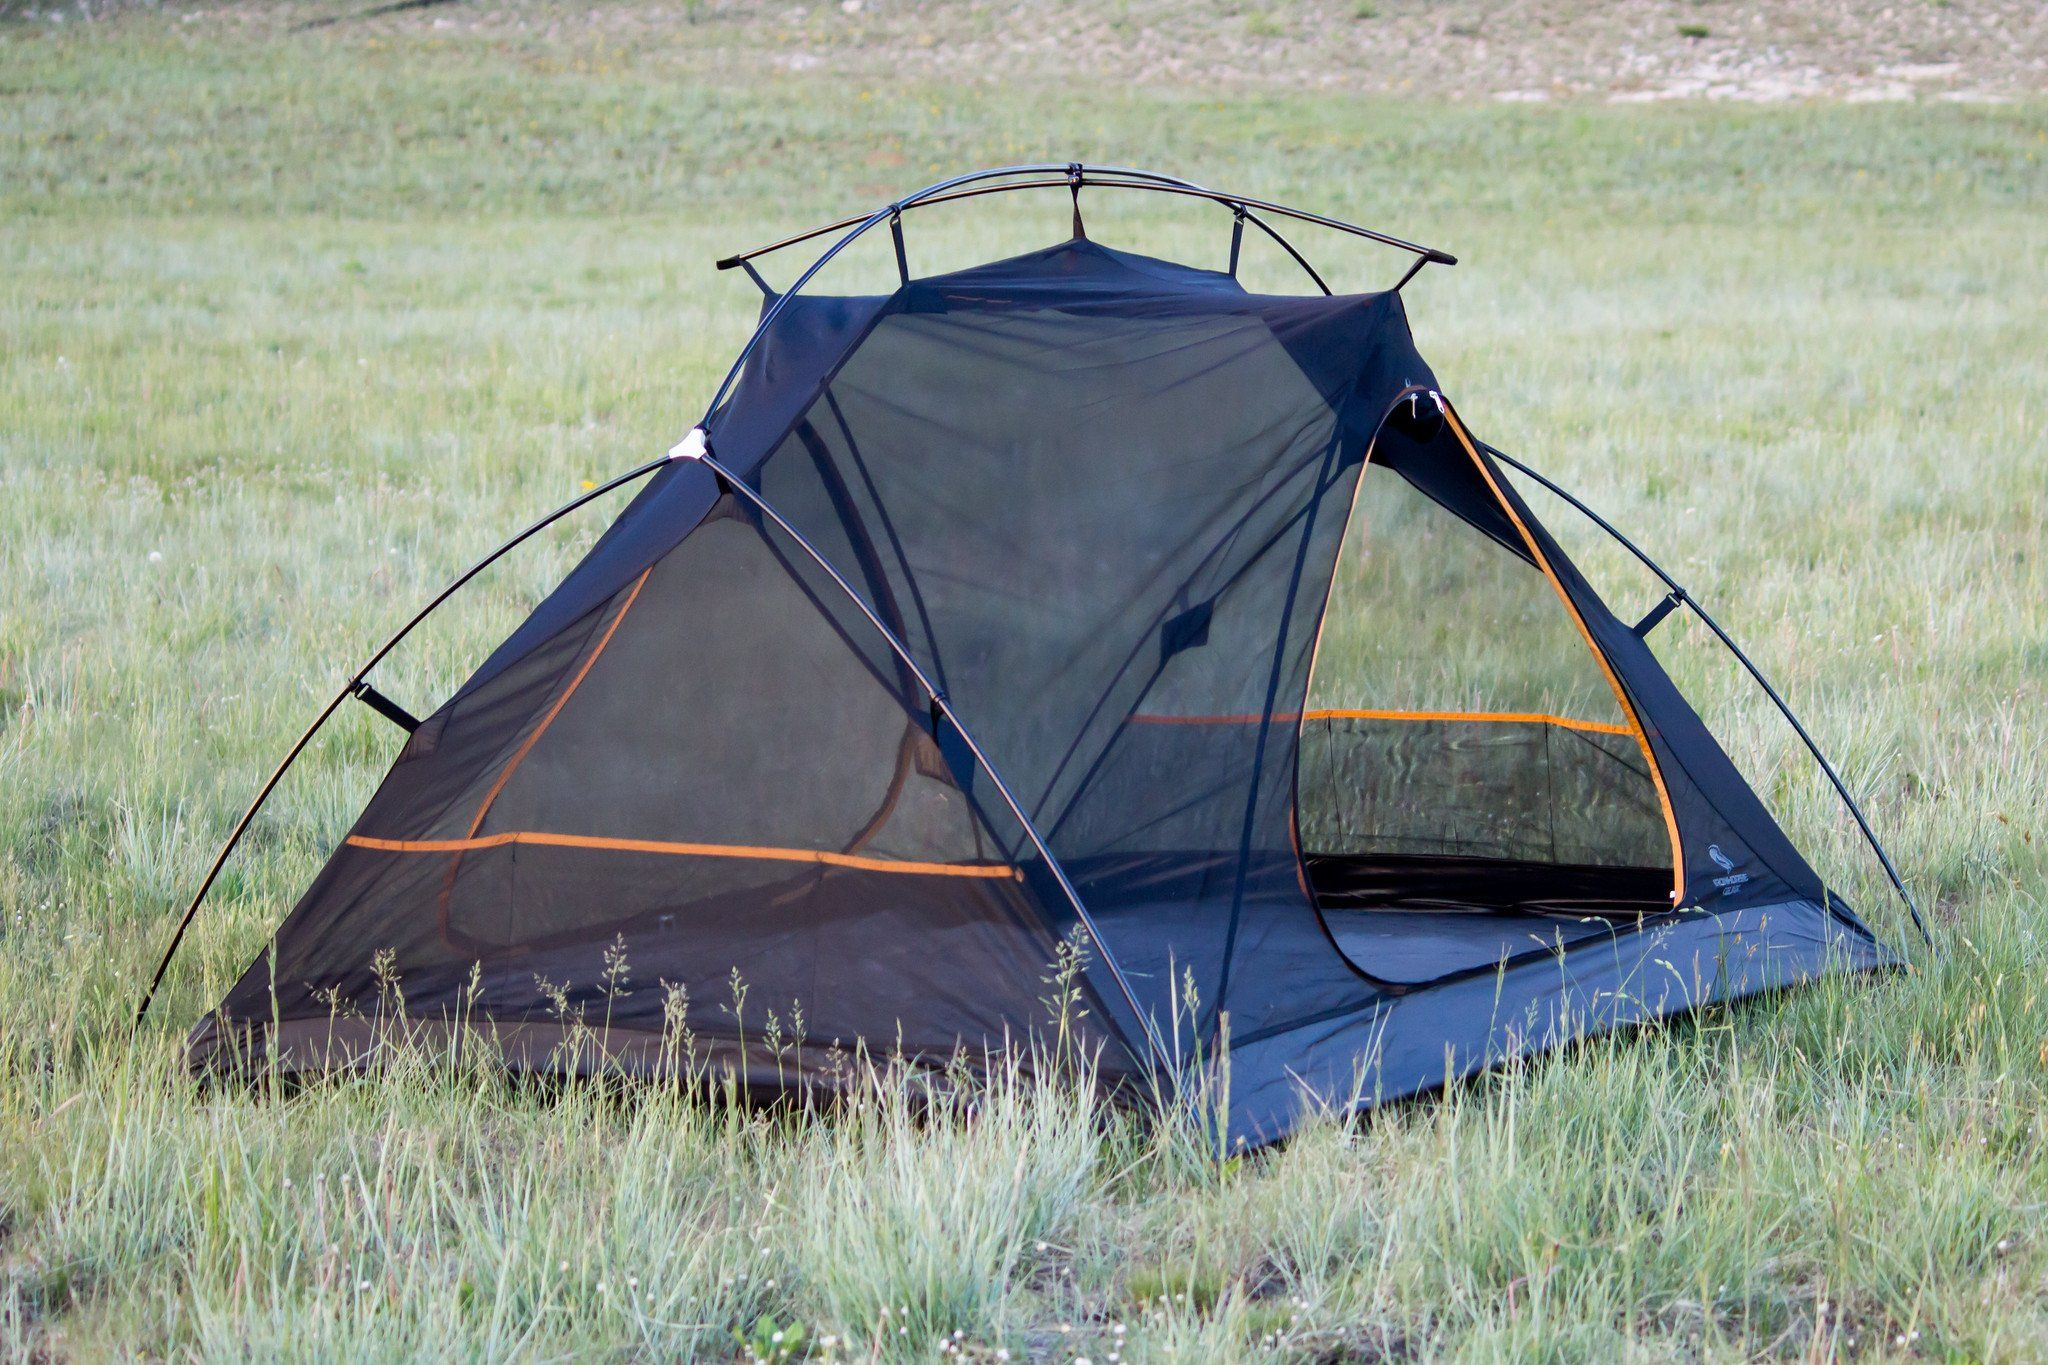 Ironhorse Gear 2 Person Lightweight Compact Tent For Motorcycle Camping Find Out More About The Great Product At Th Backpacking Tent Motorcycle Camping Tent